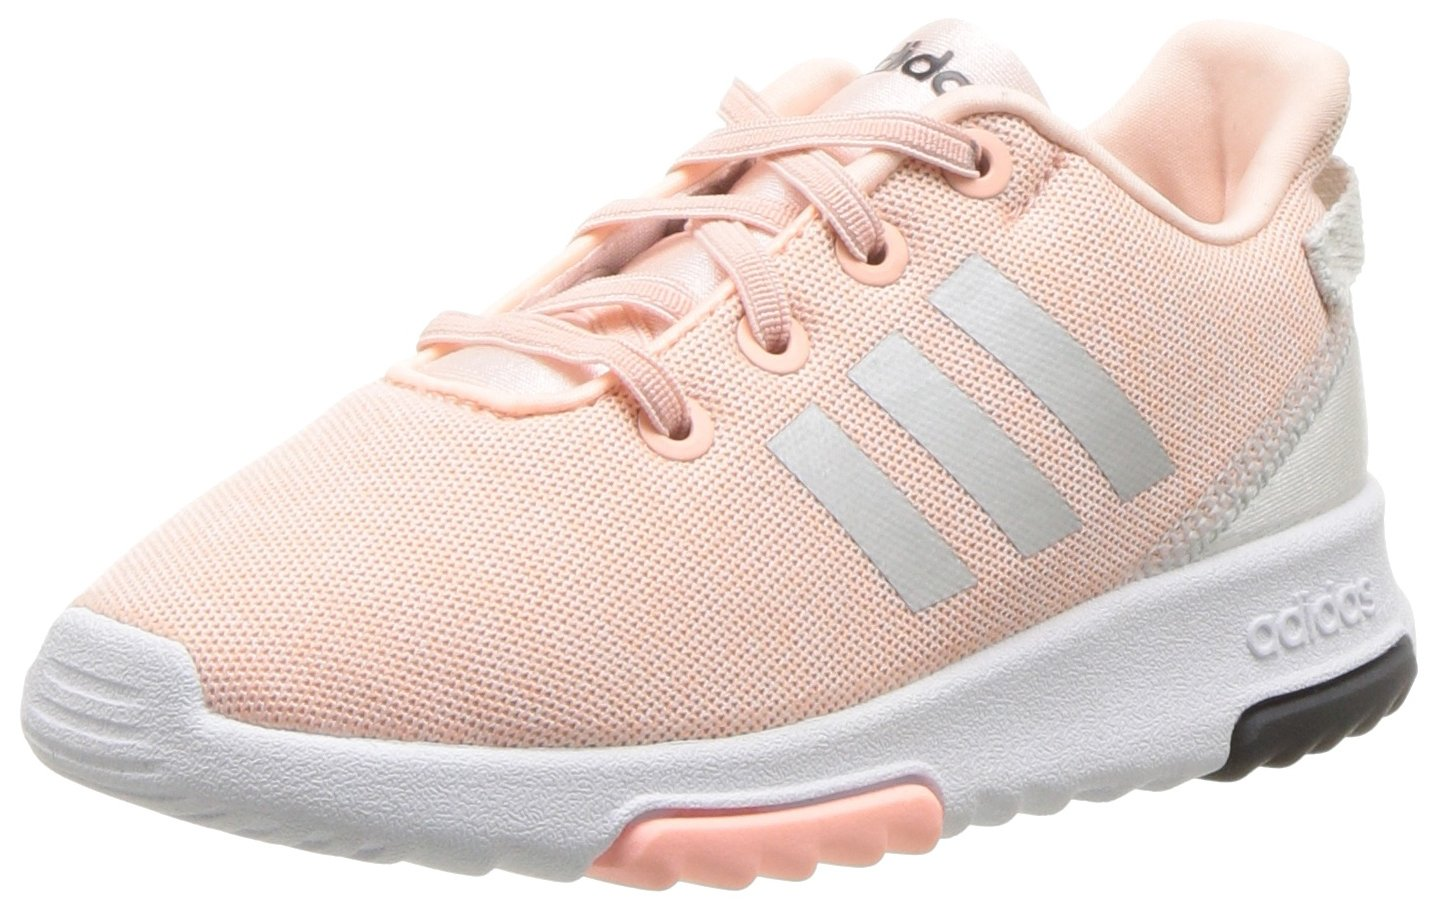 adidas Kids CF Racer TR Running Shoe, Haze Coral/Metallic Silver/White, 4K M US Toddler